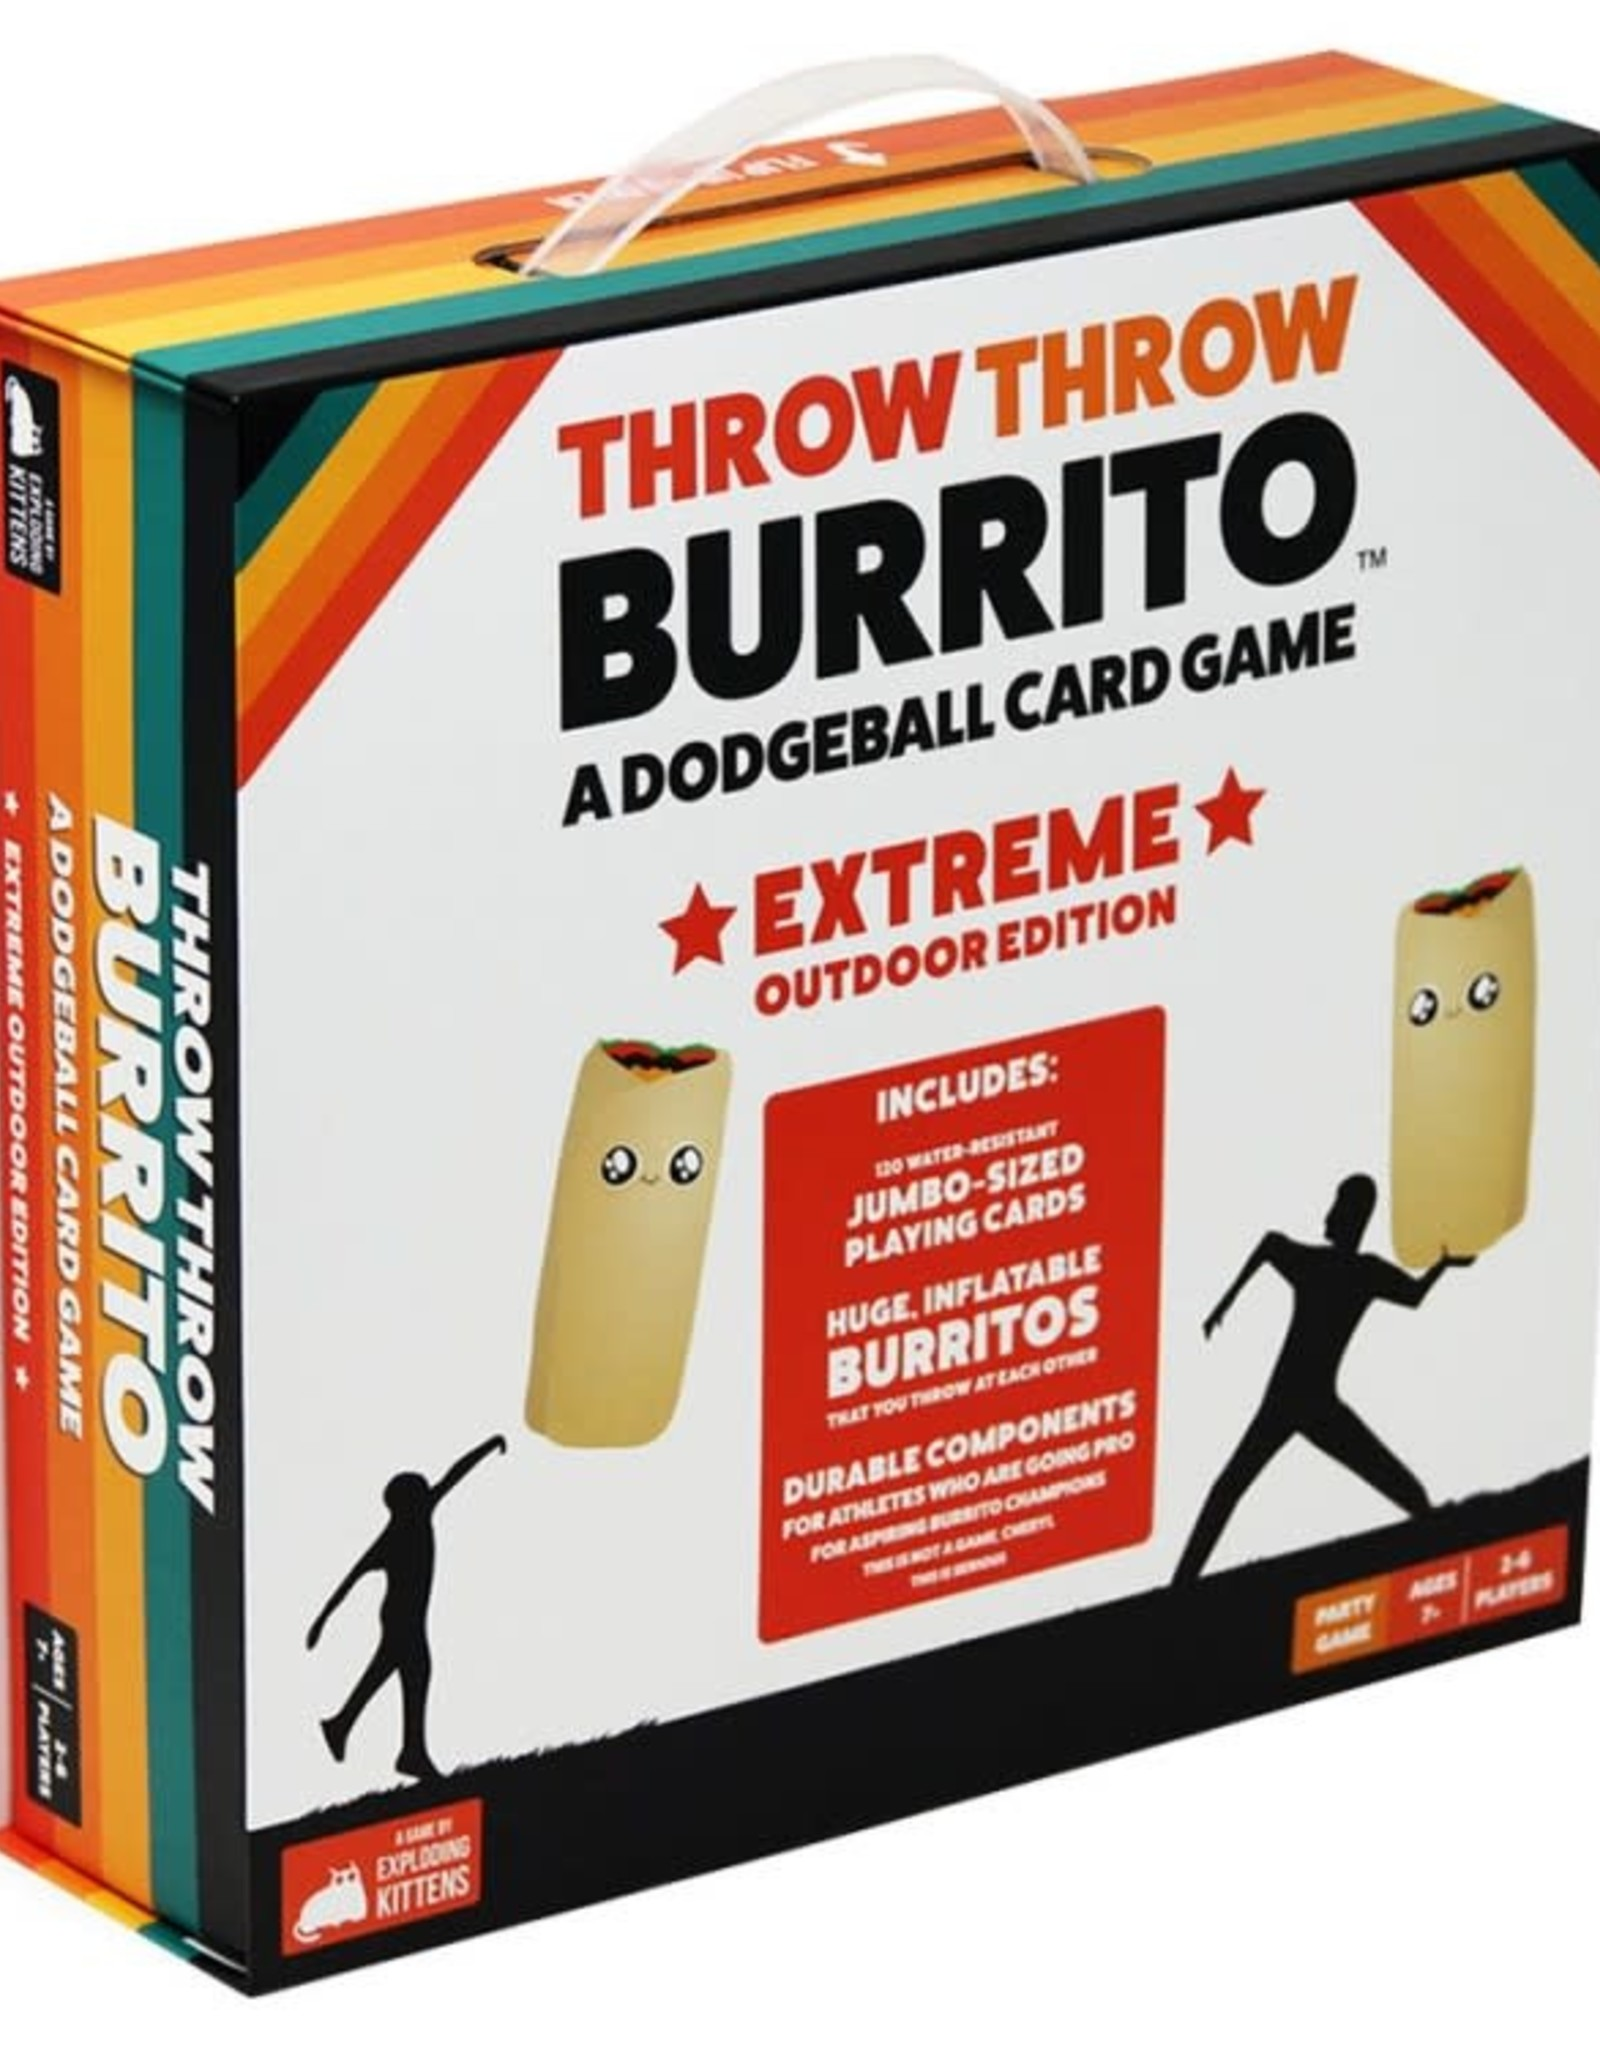 Exploding Kittens Throw Throw Burrito: Extreme Outdoor Edition